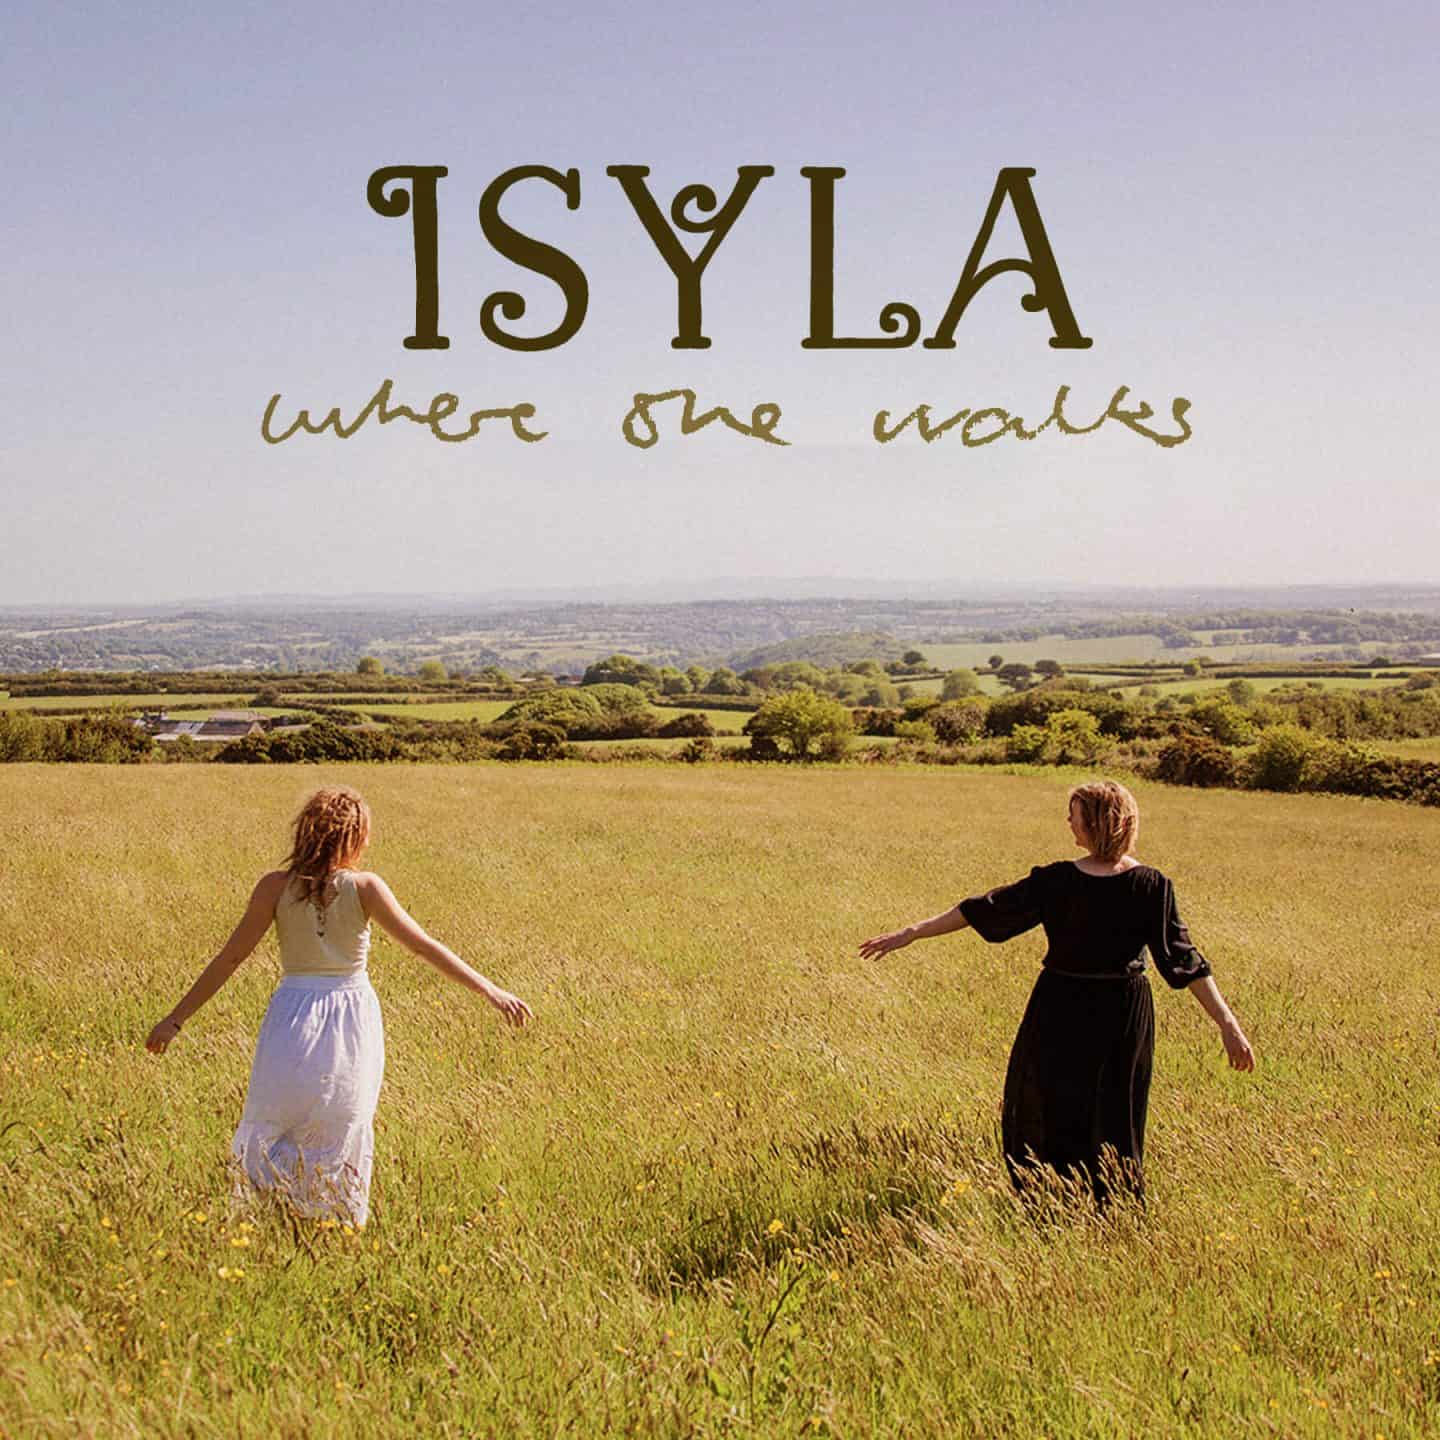 Album cover- Where She Walks -ISYLA is an unusual equal partnership between songwriter and lyricist Amy Woodburn (41) and singer-songwriter Lizzie Freeborn (19), both Cornwall-based musicians